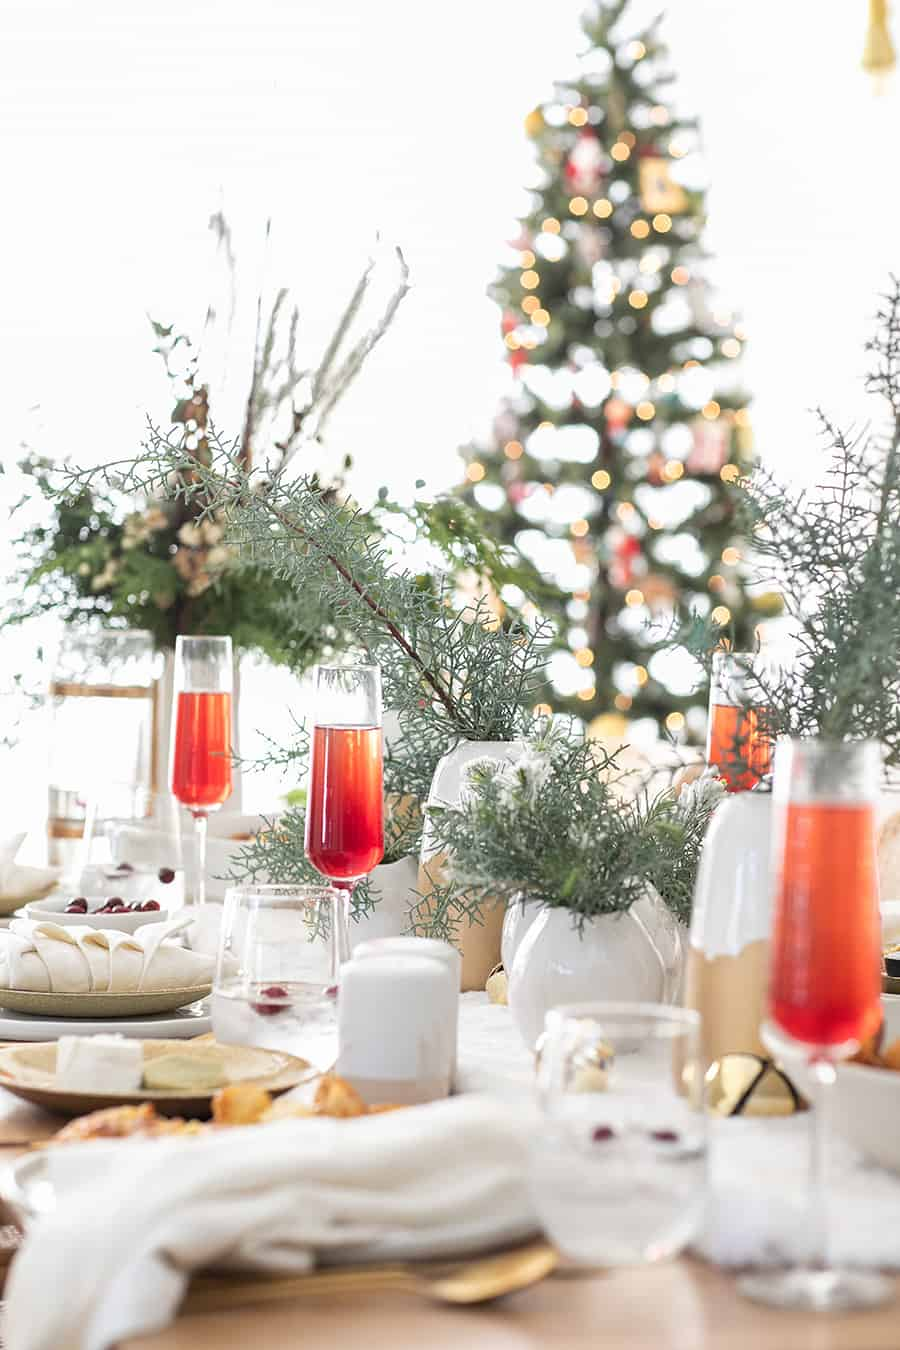 Christmas Brunch Table Setting with Cranberry Mimosas and greens in white vases.